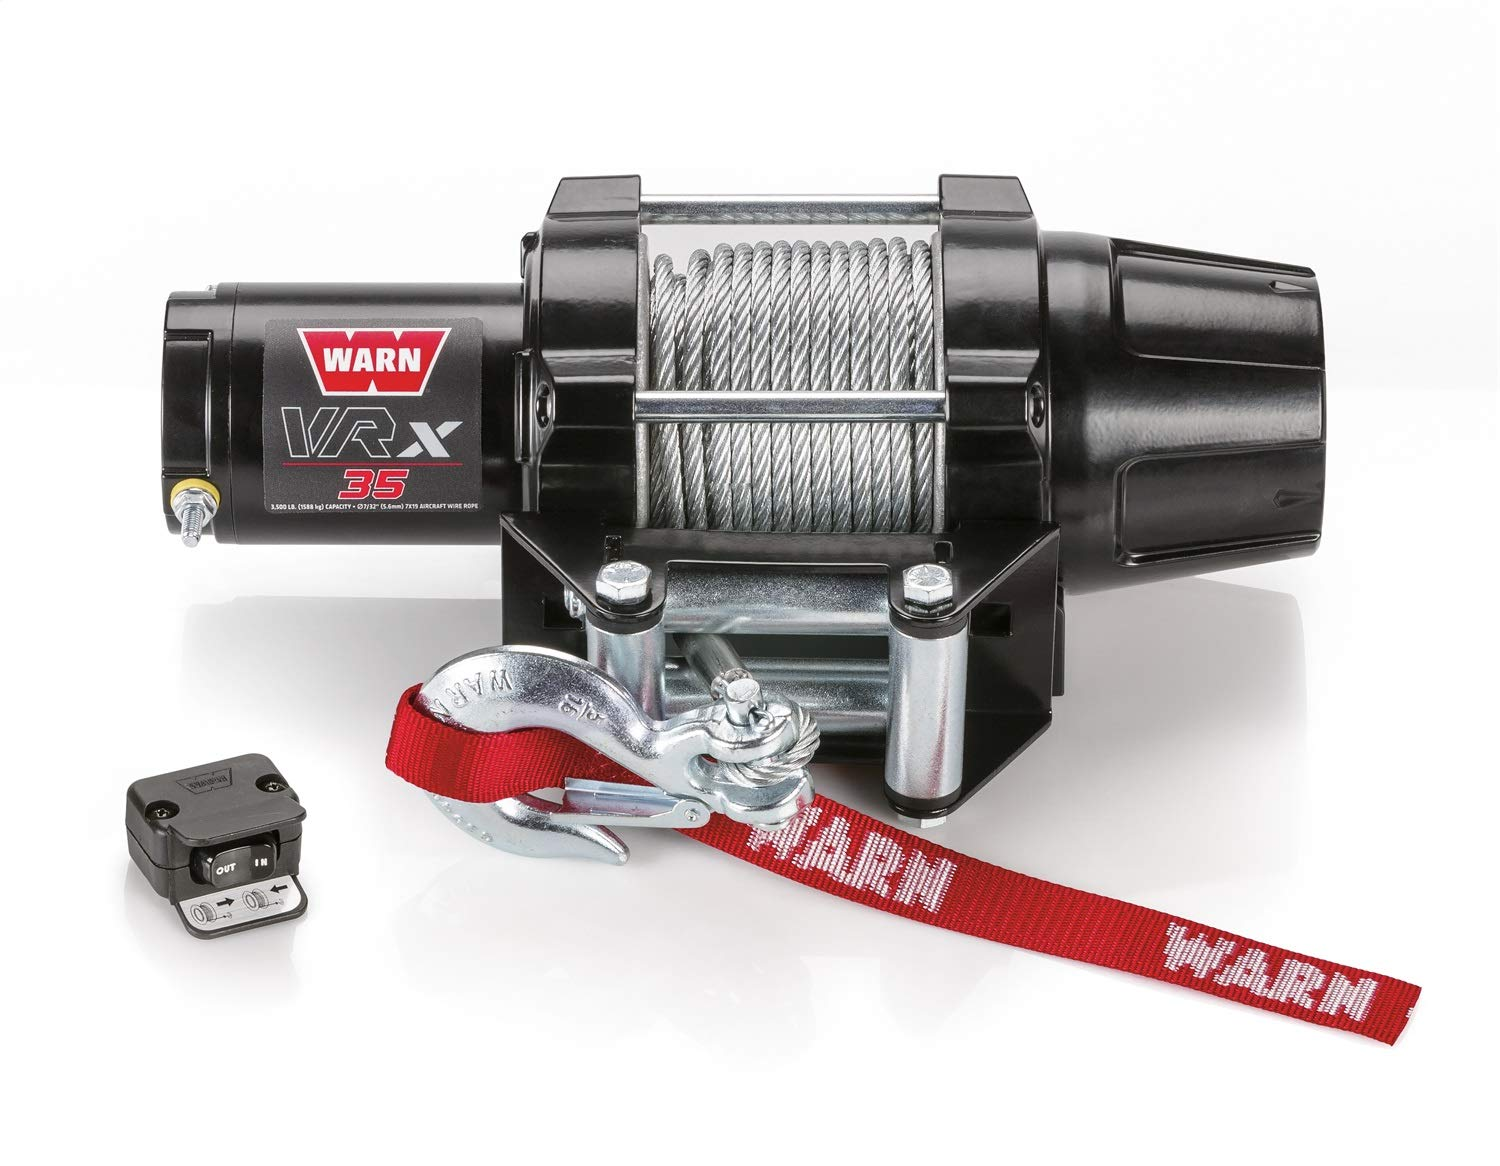 WARN 101020 VRX 25-S Powersports Winch With Synthetic Rope